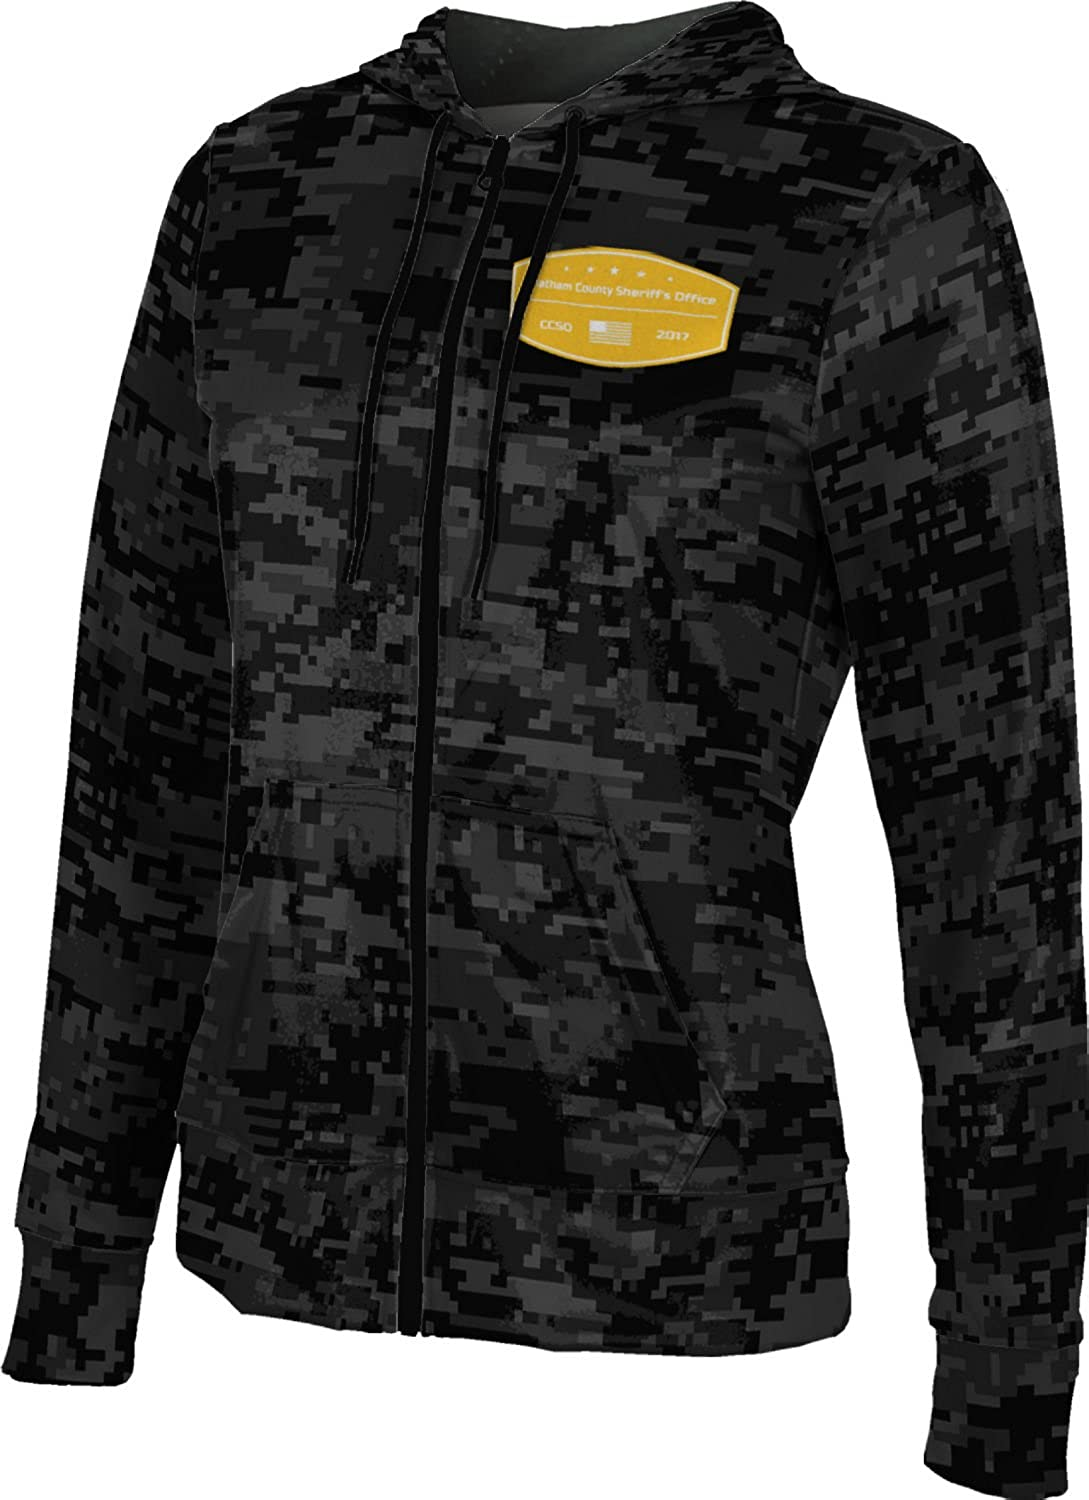 ProSphere Women's Chatham County Sheriff's Office Digital Fullzip Hoodie